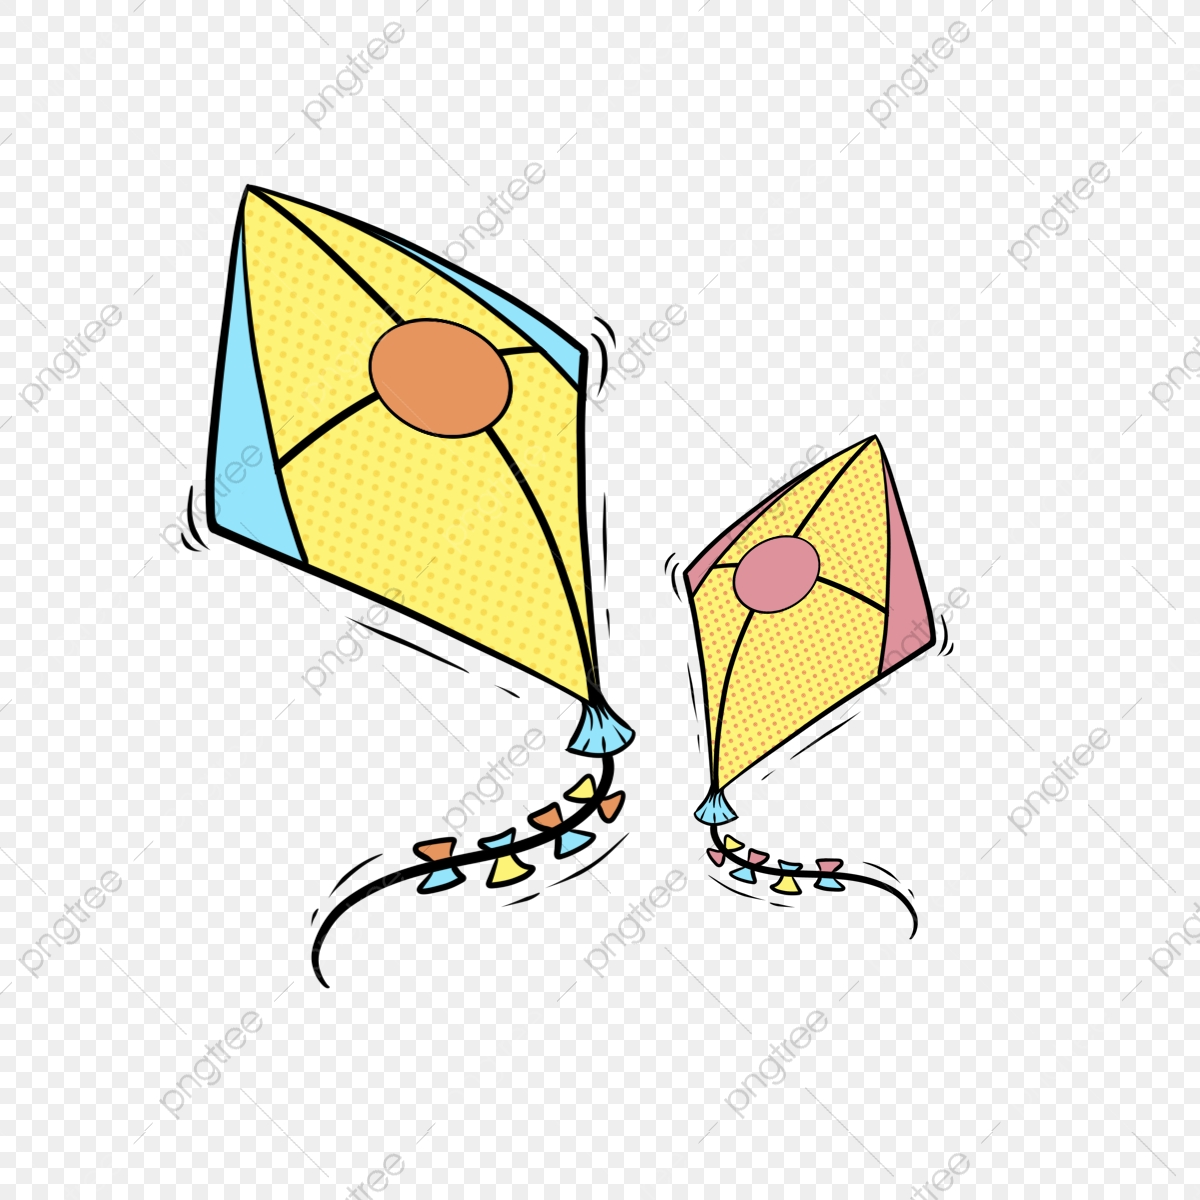 Kite Vector Png Images Kites Kite Flying Creative Kites Vectors In Ai Eps Format Free Download On Pngtree